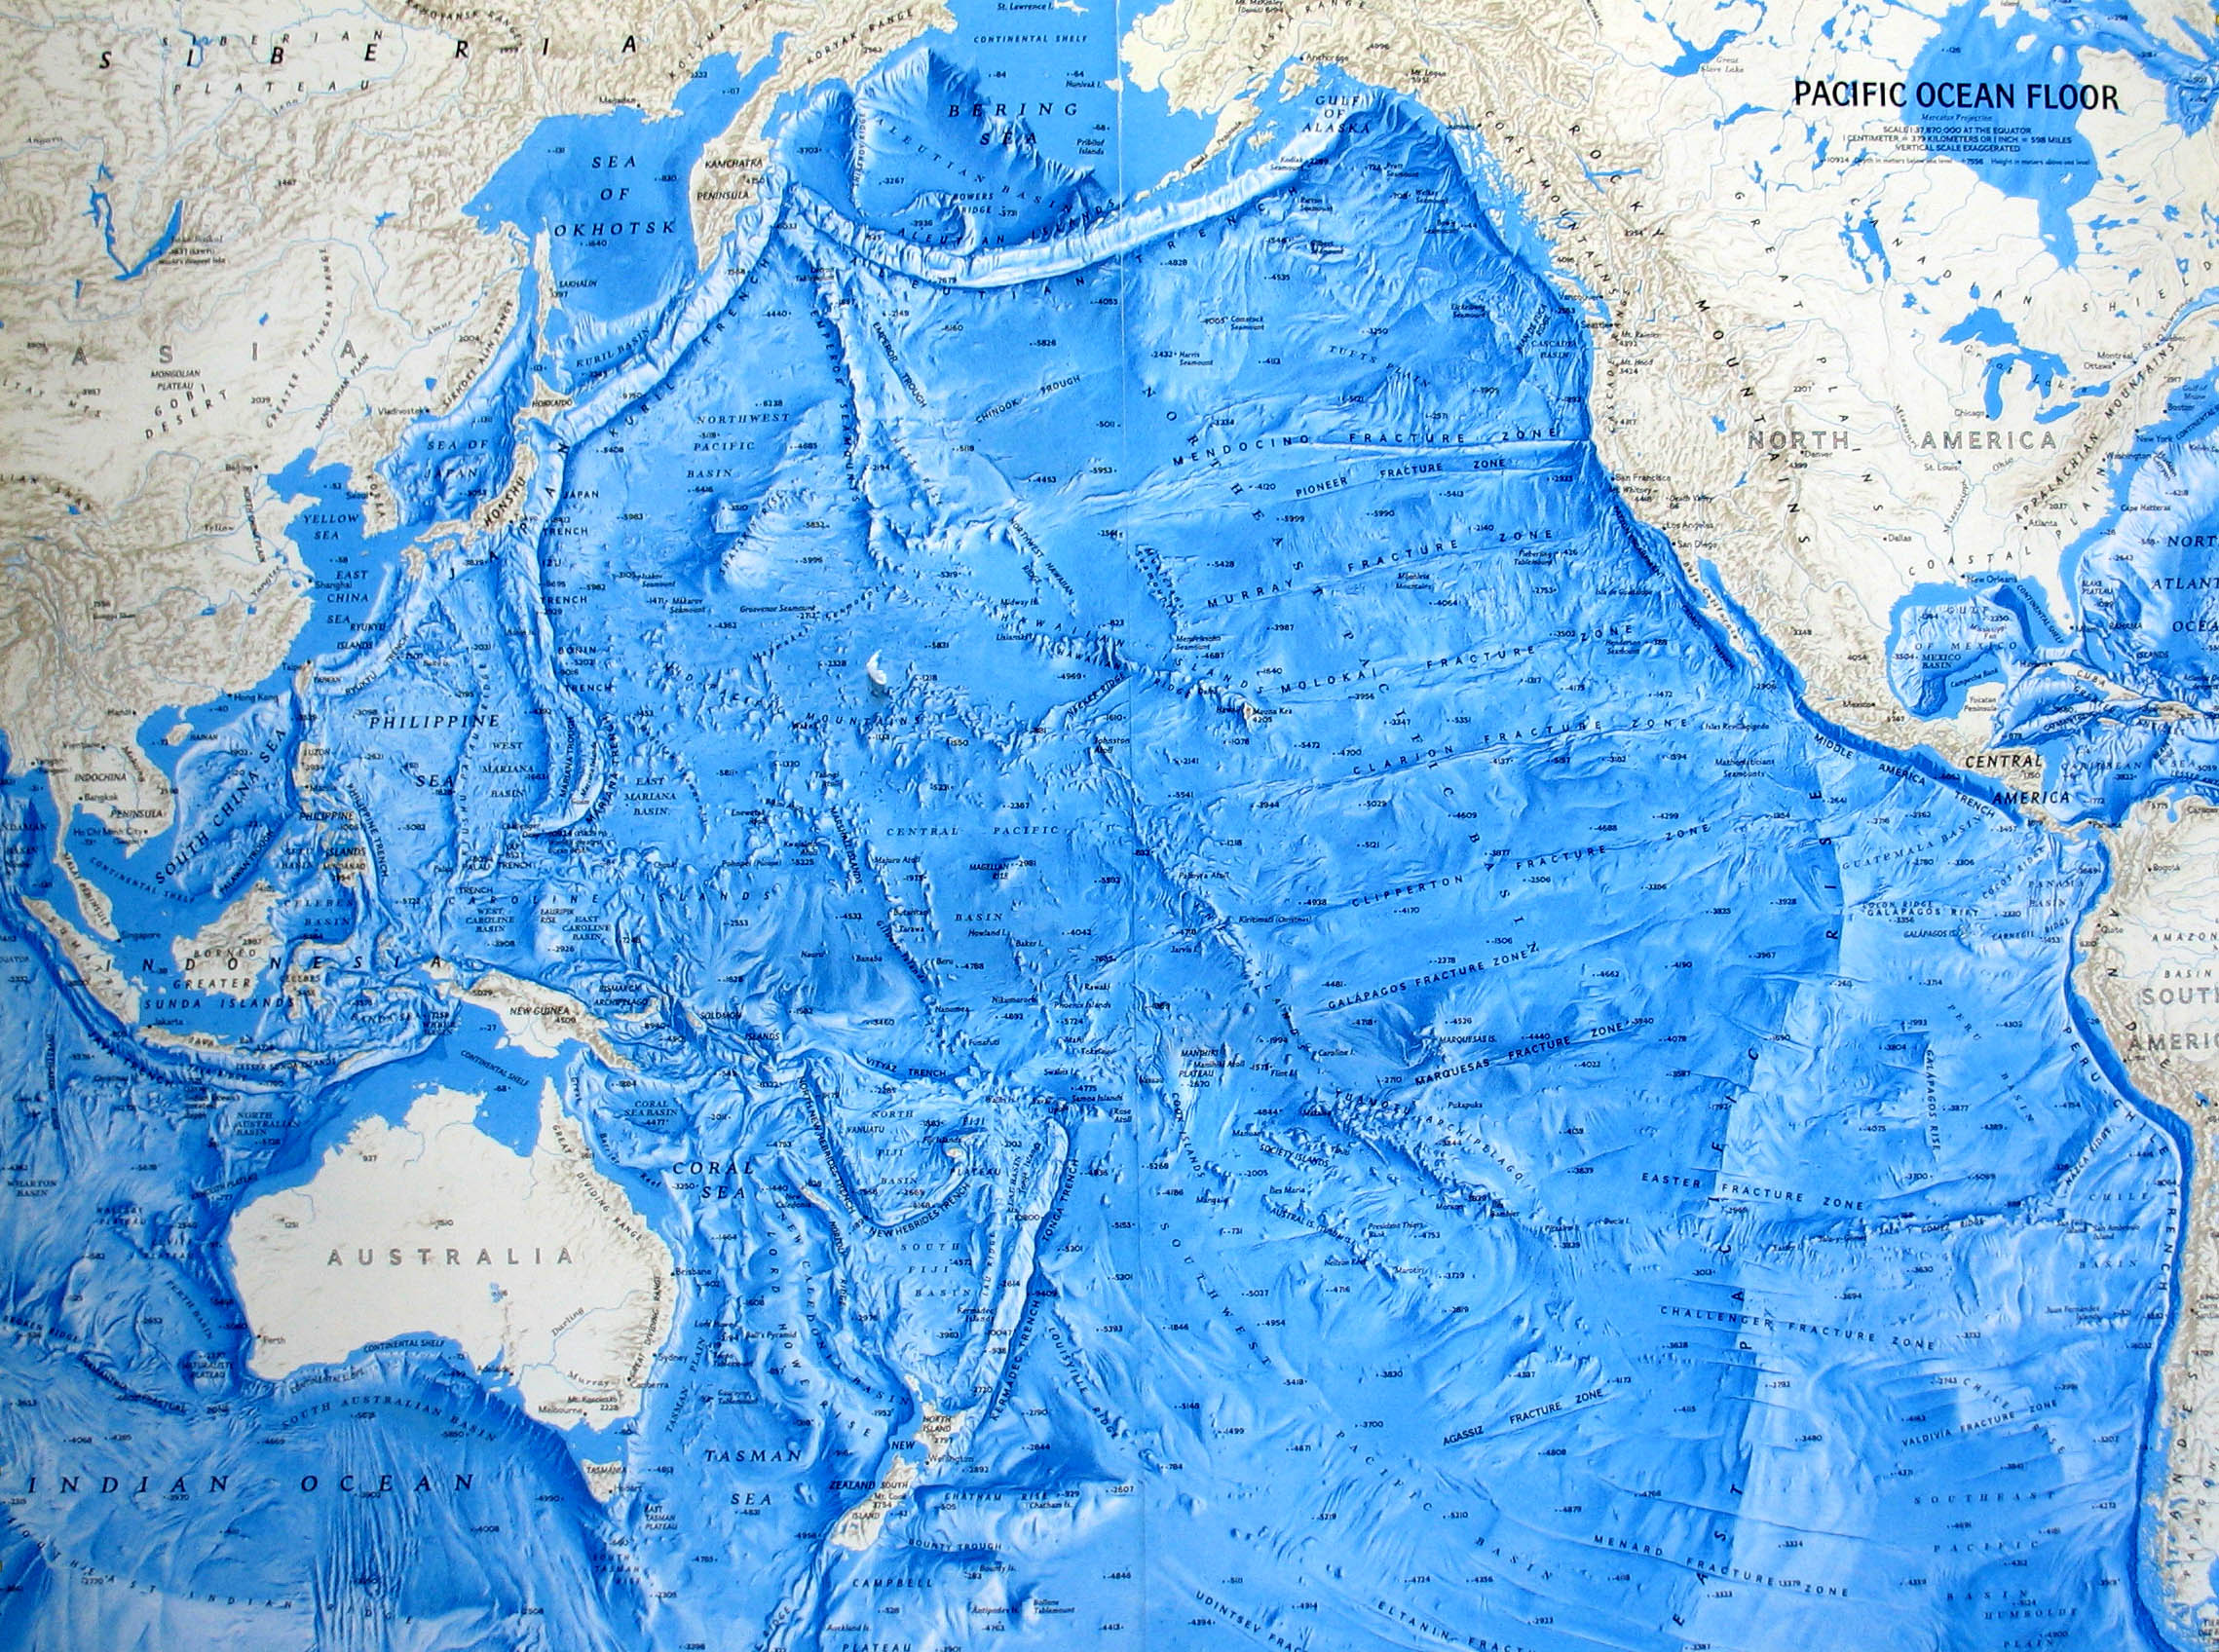 Ocean Floor Relief Maps | Detailed Maps of Sea and Ocean ... Pacific Ocean Underwater Map